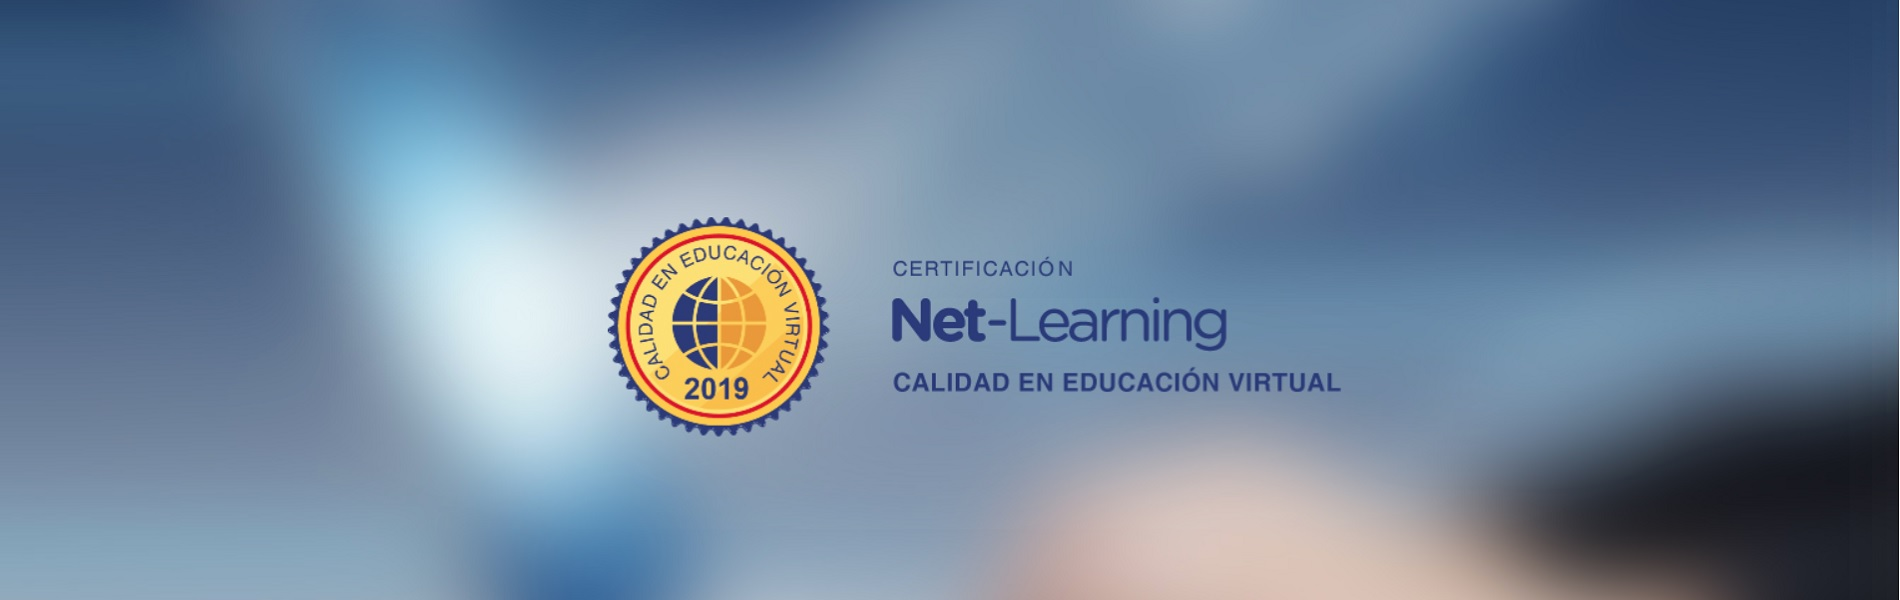 Certificación Net-Learning